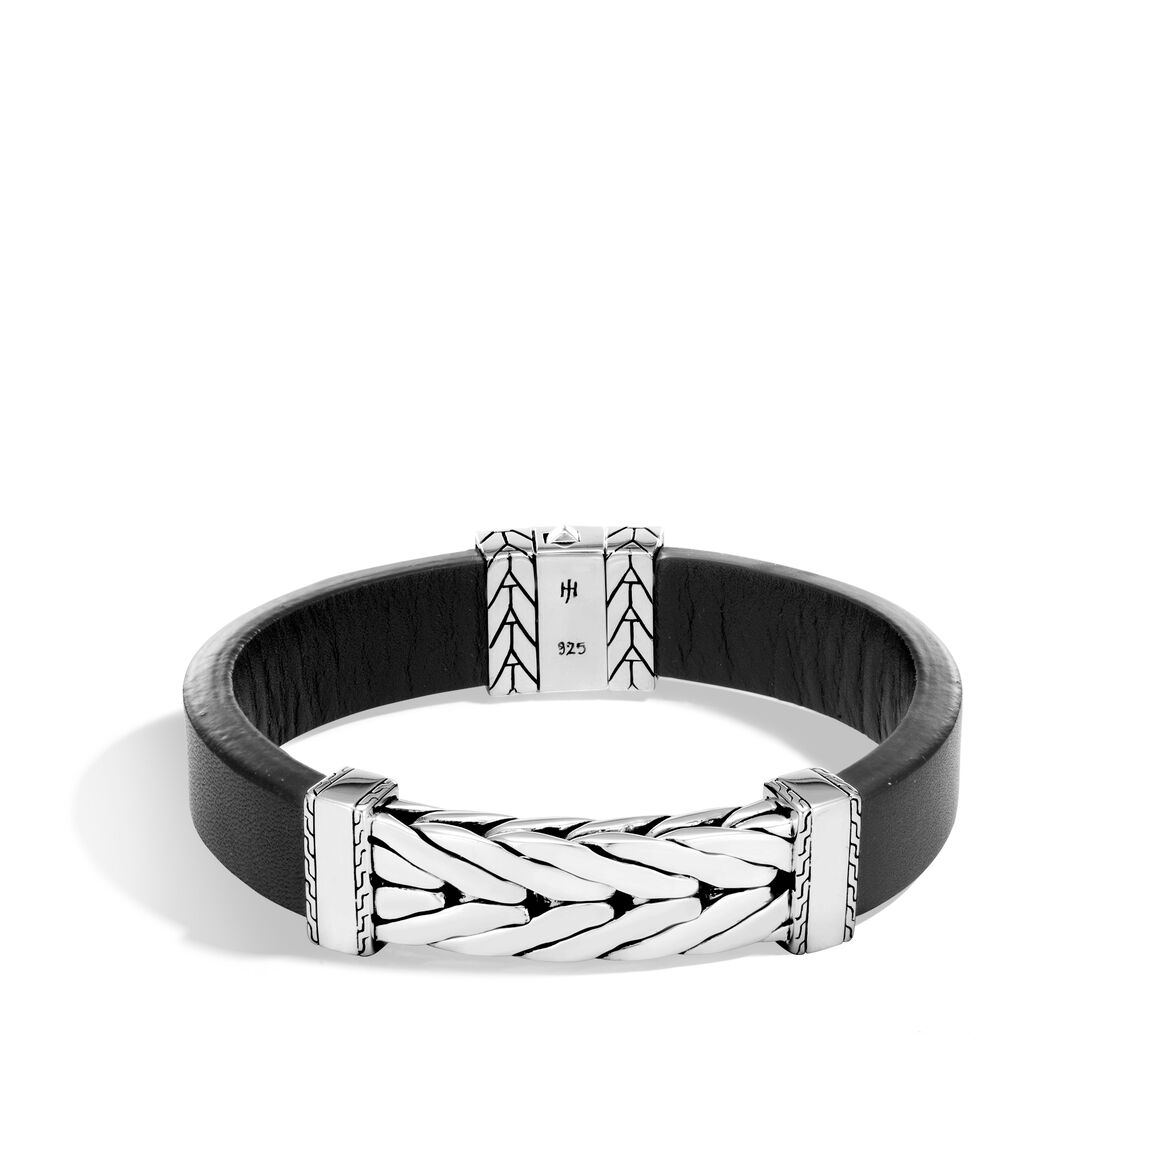 Modern Chain 13MM Station Bracelet in Silver, Leather